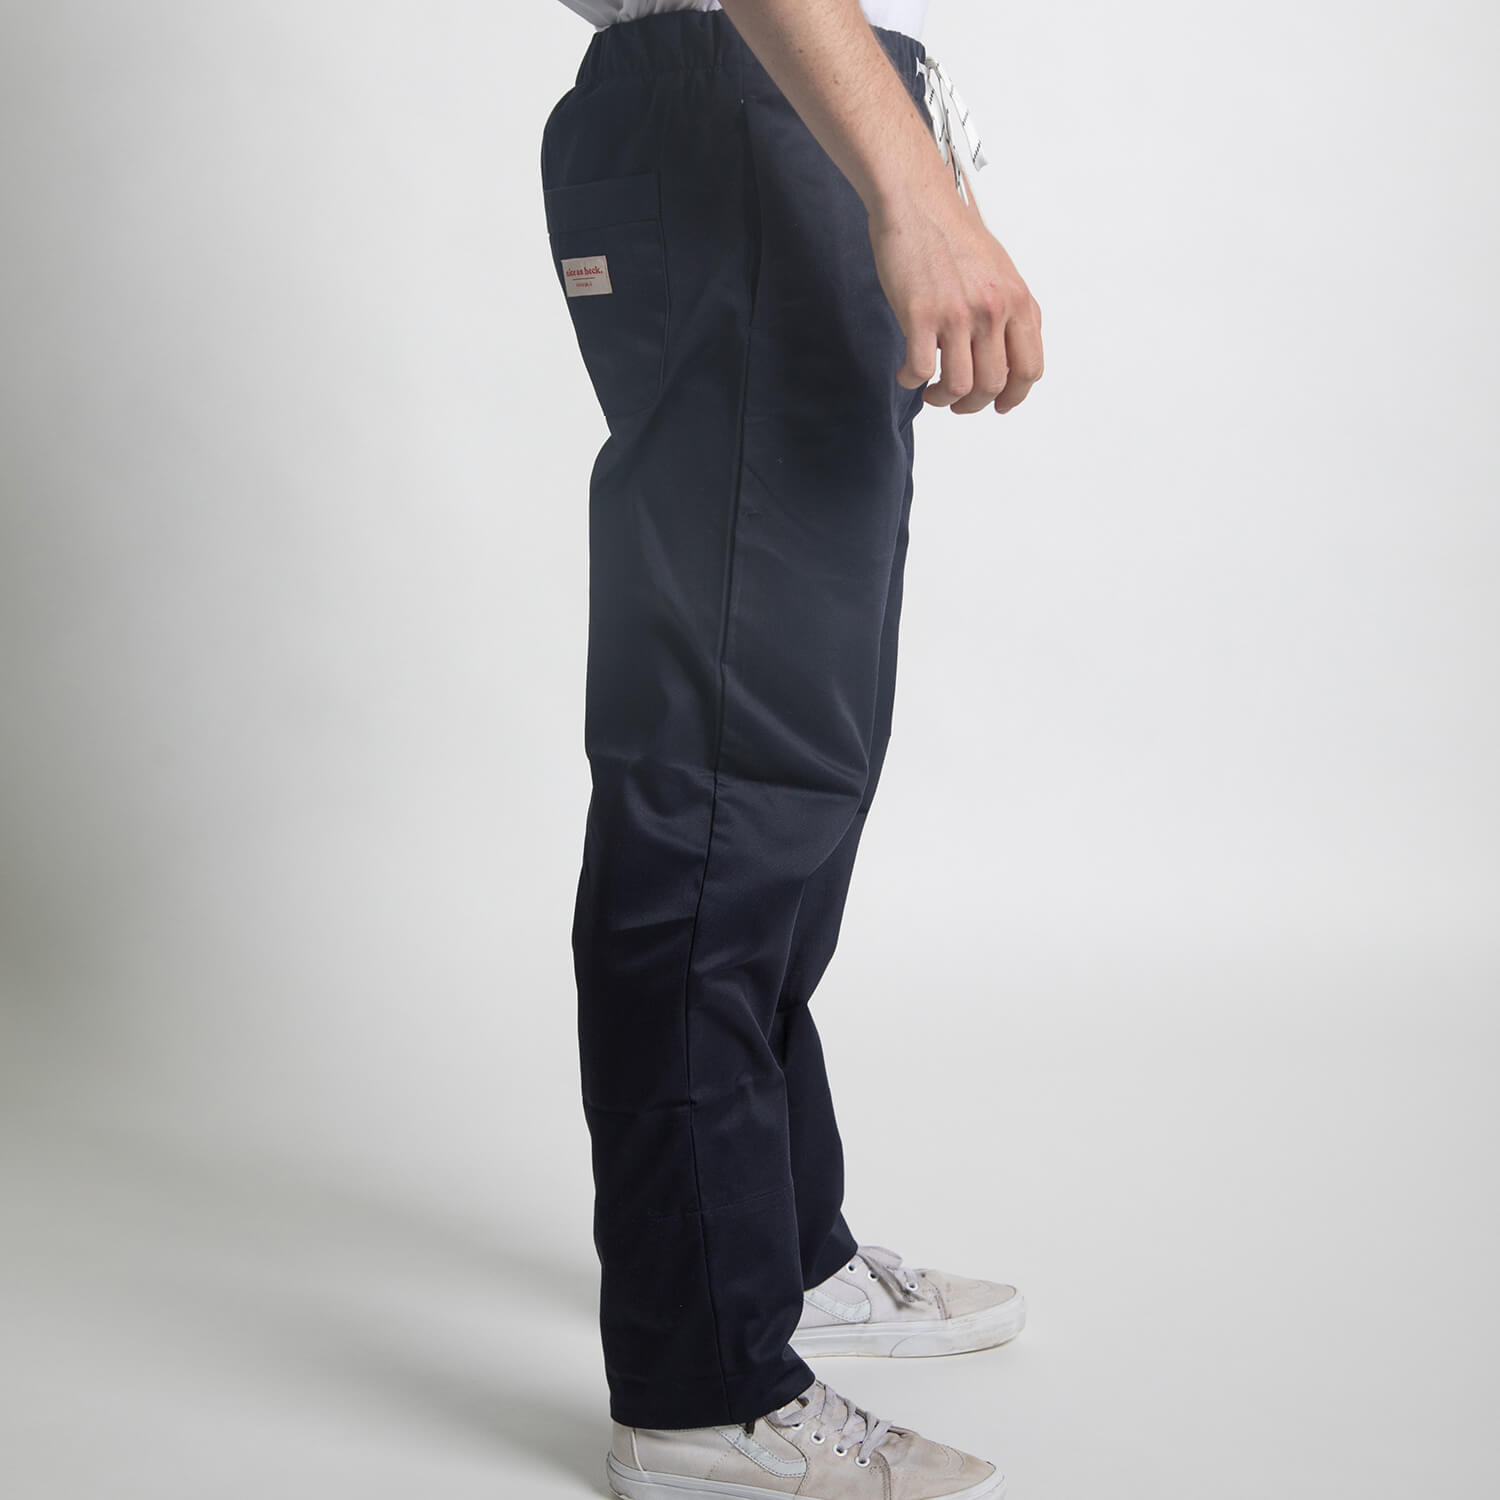 boy wearing utility pants